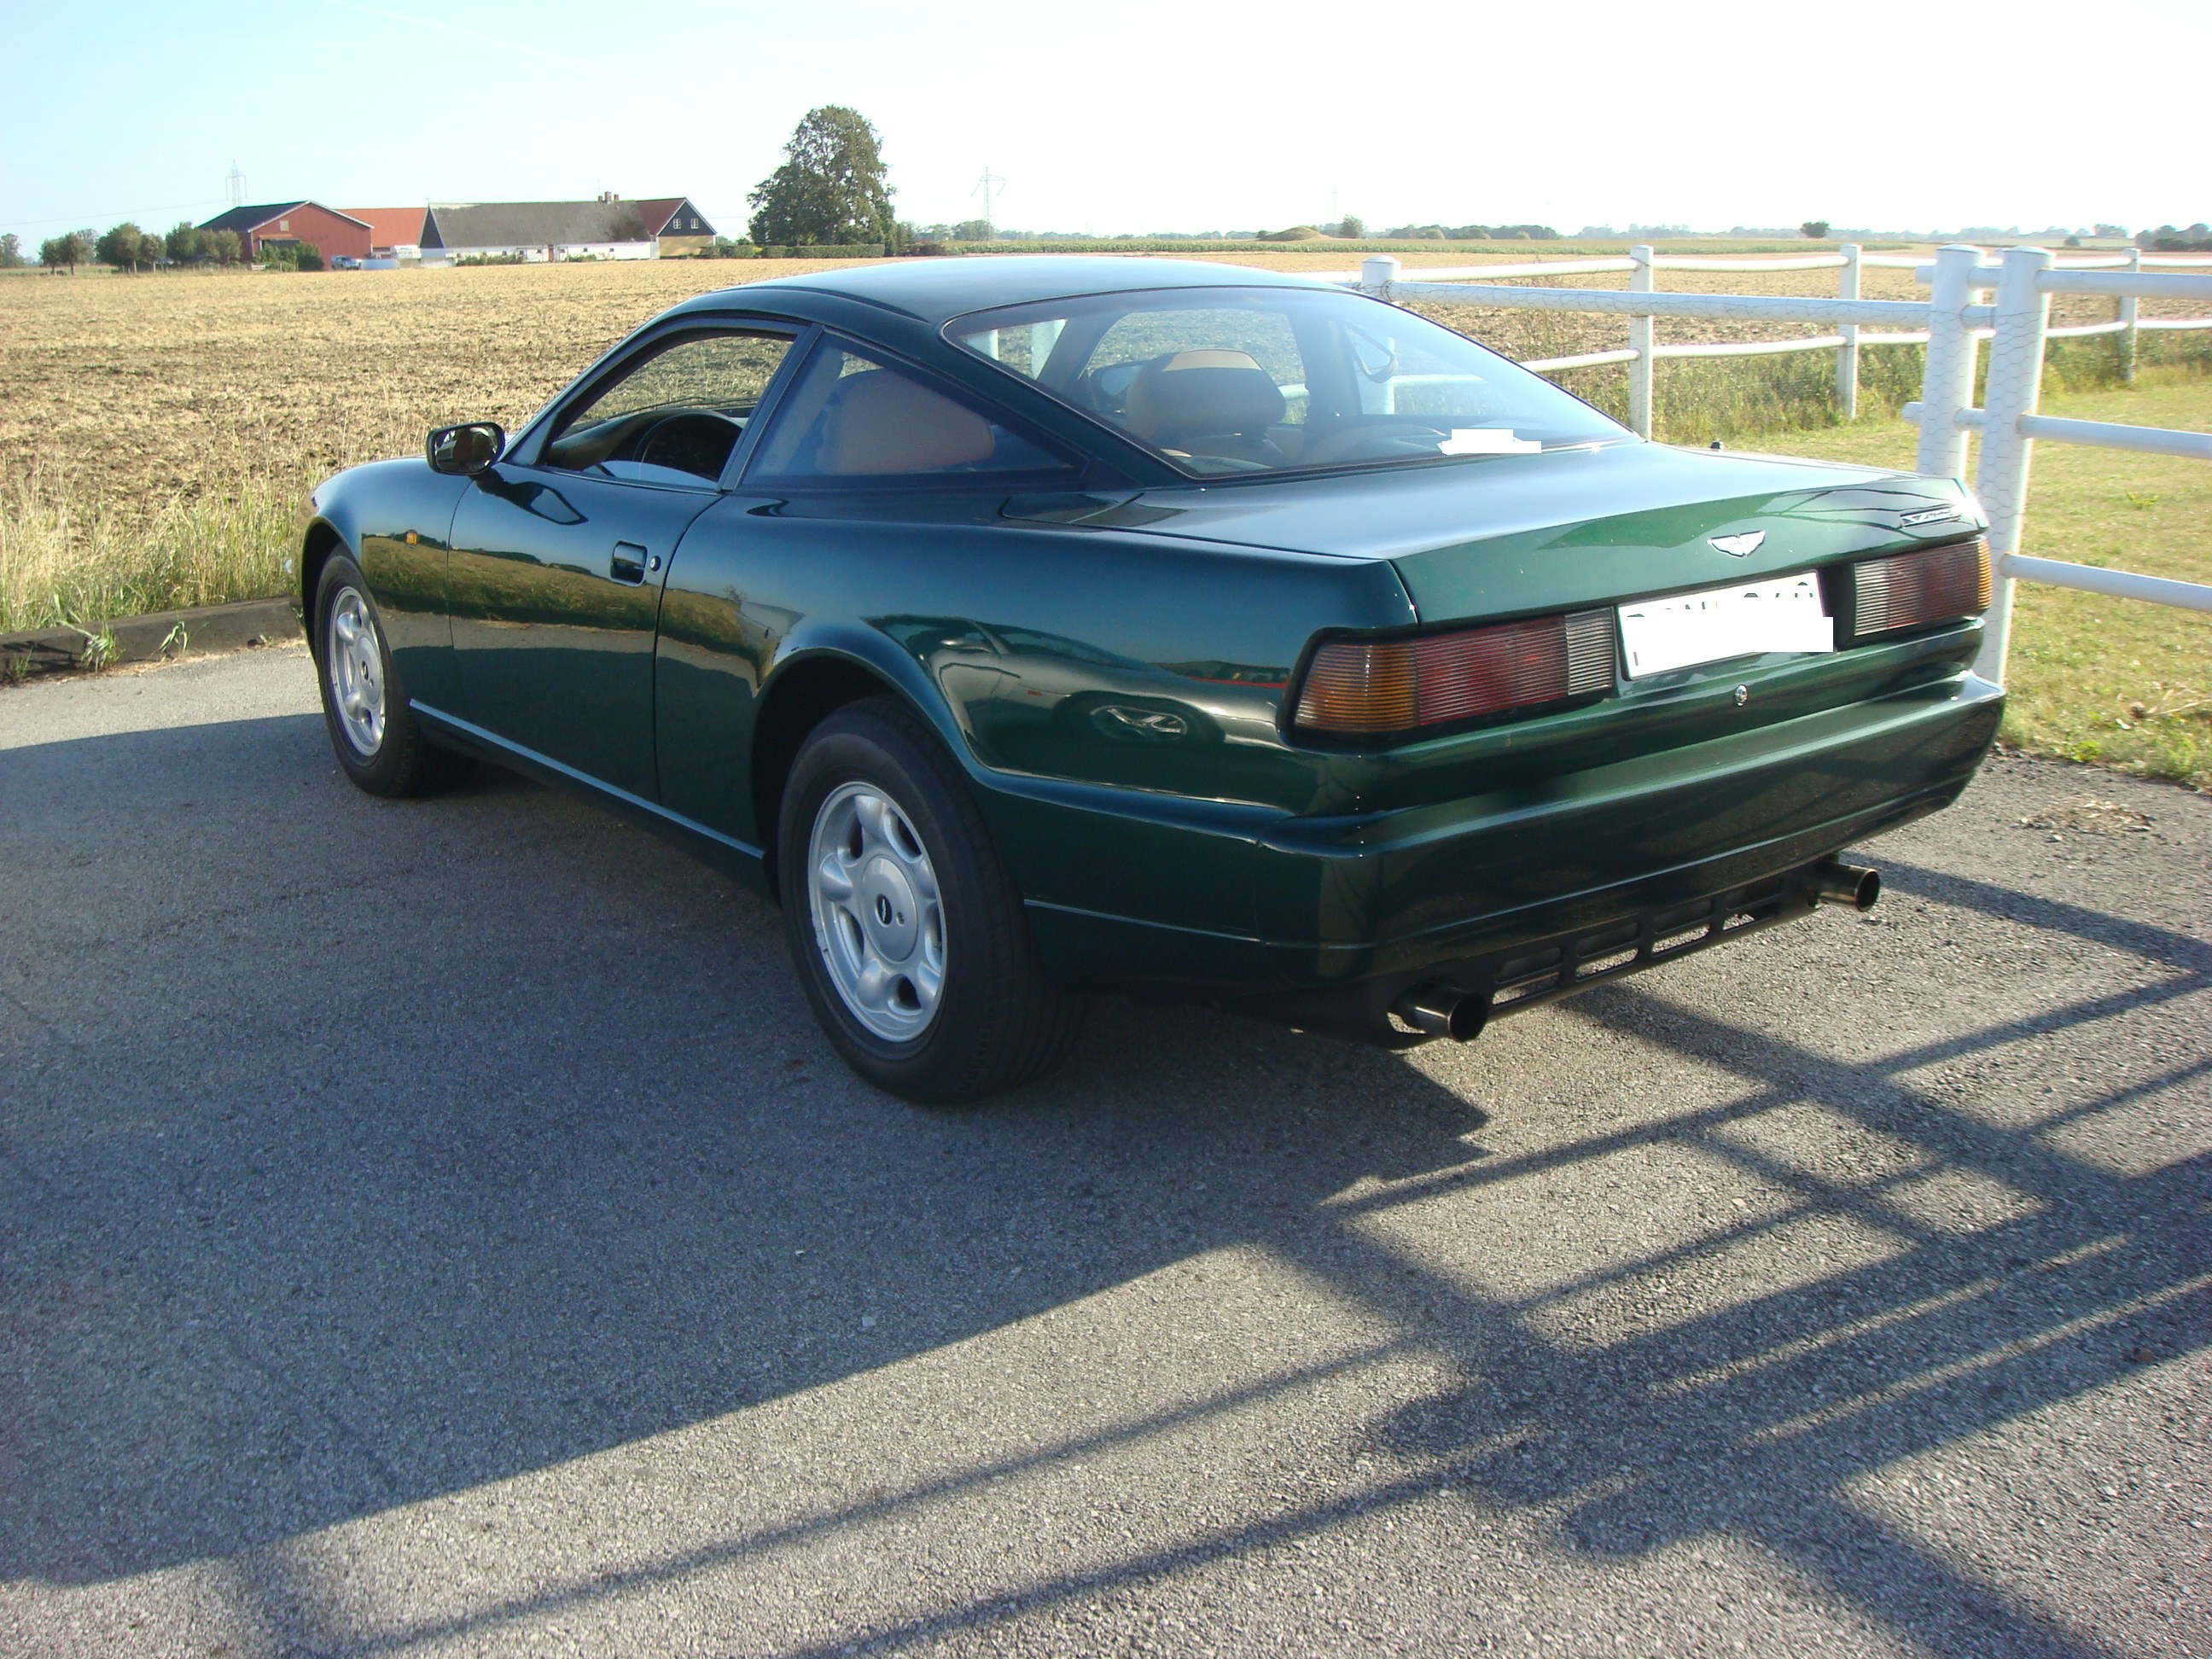 Aston Martin Virage, 1992